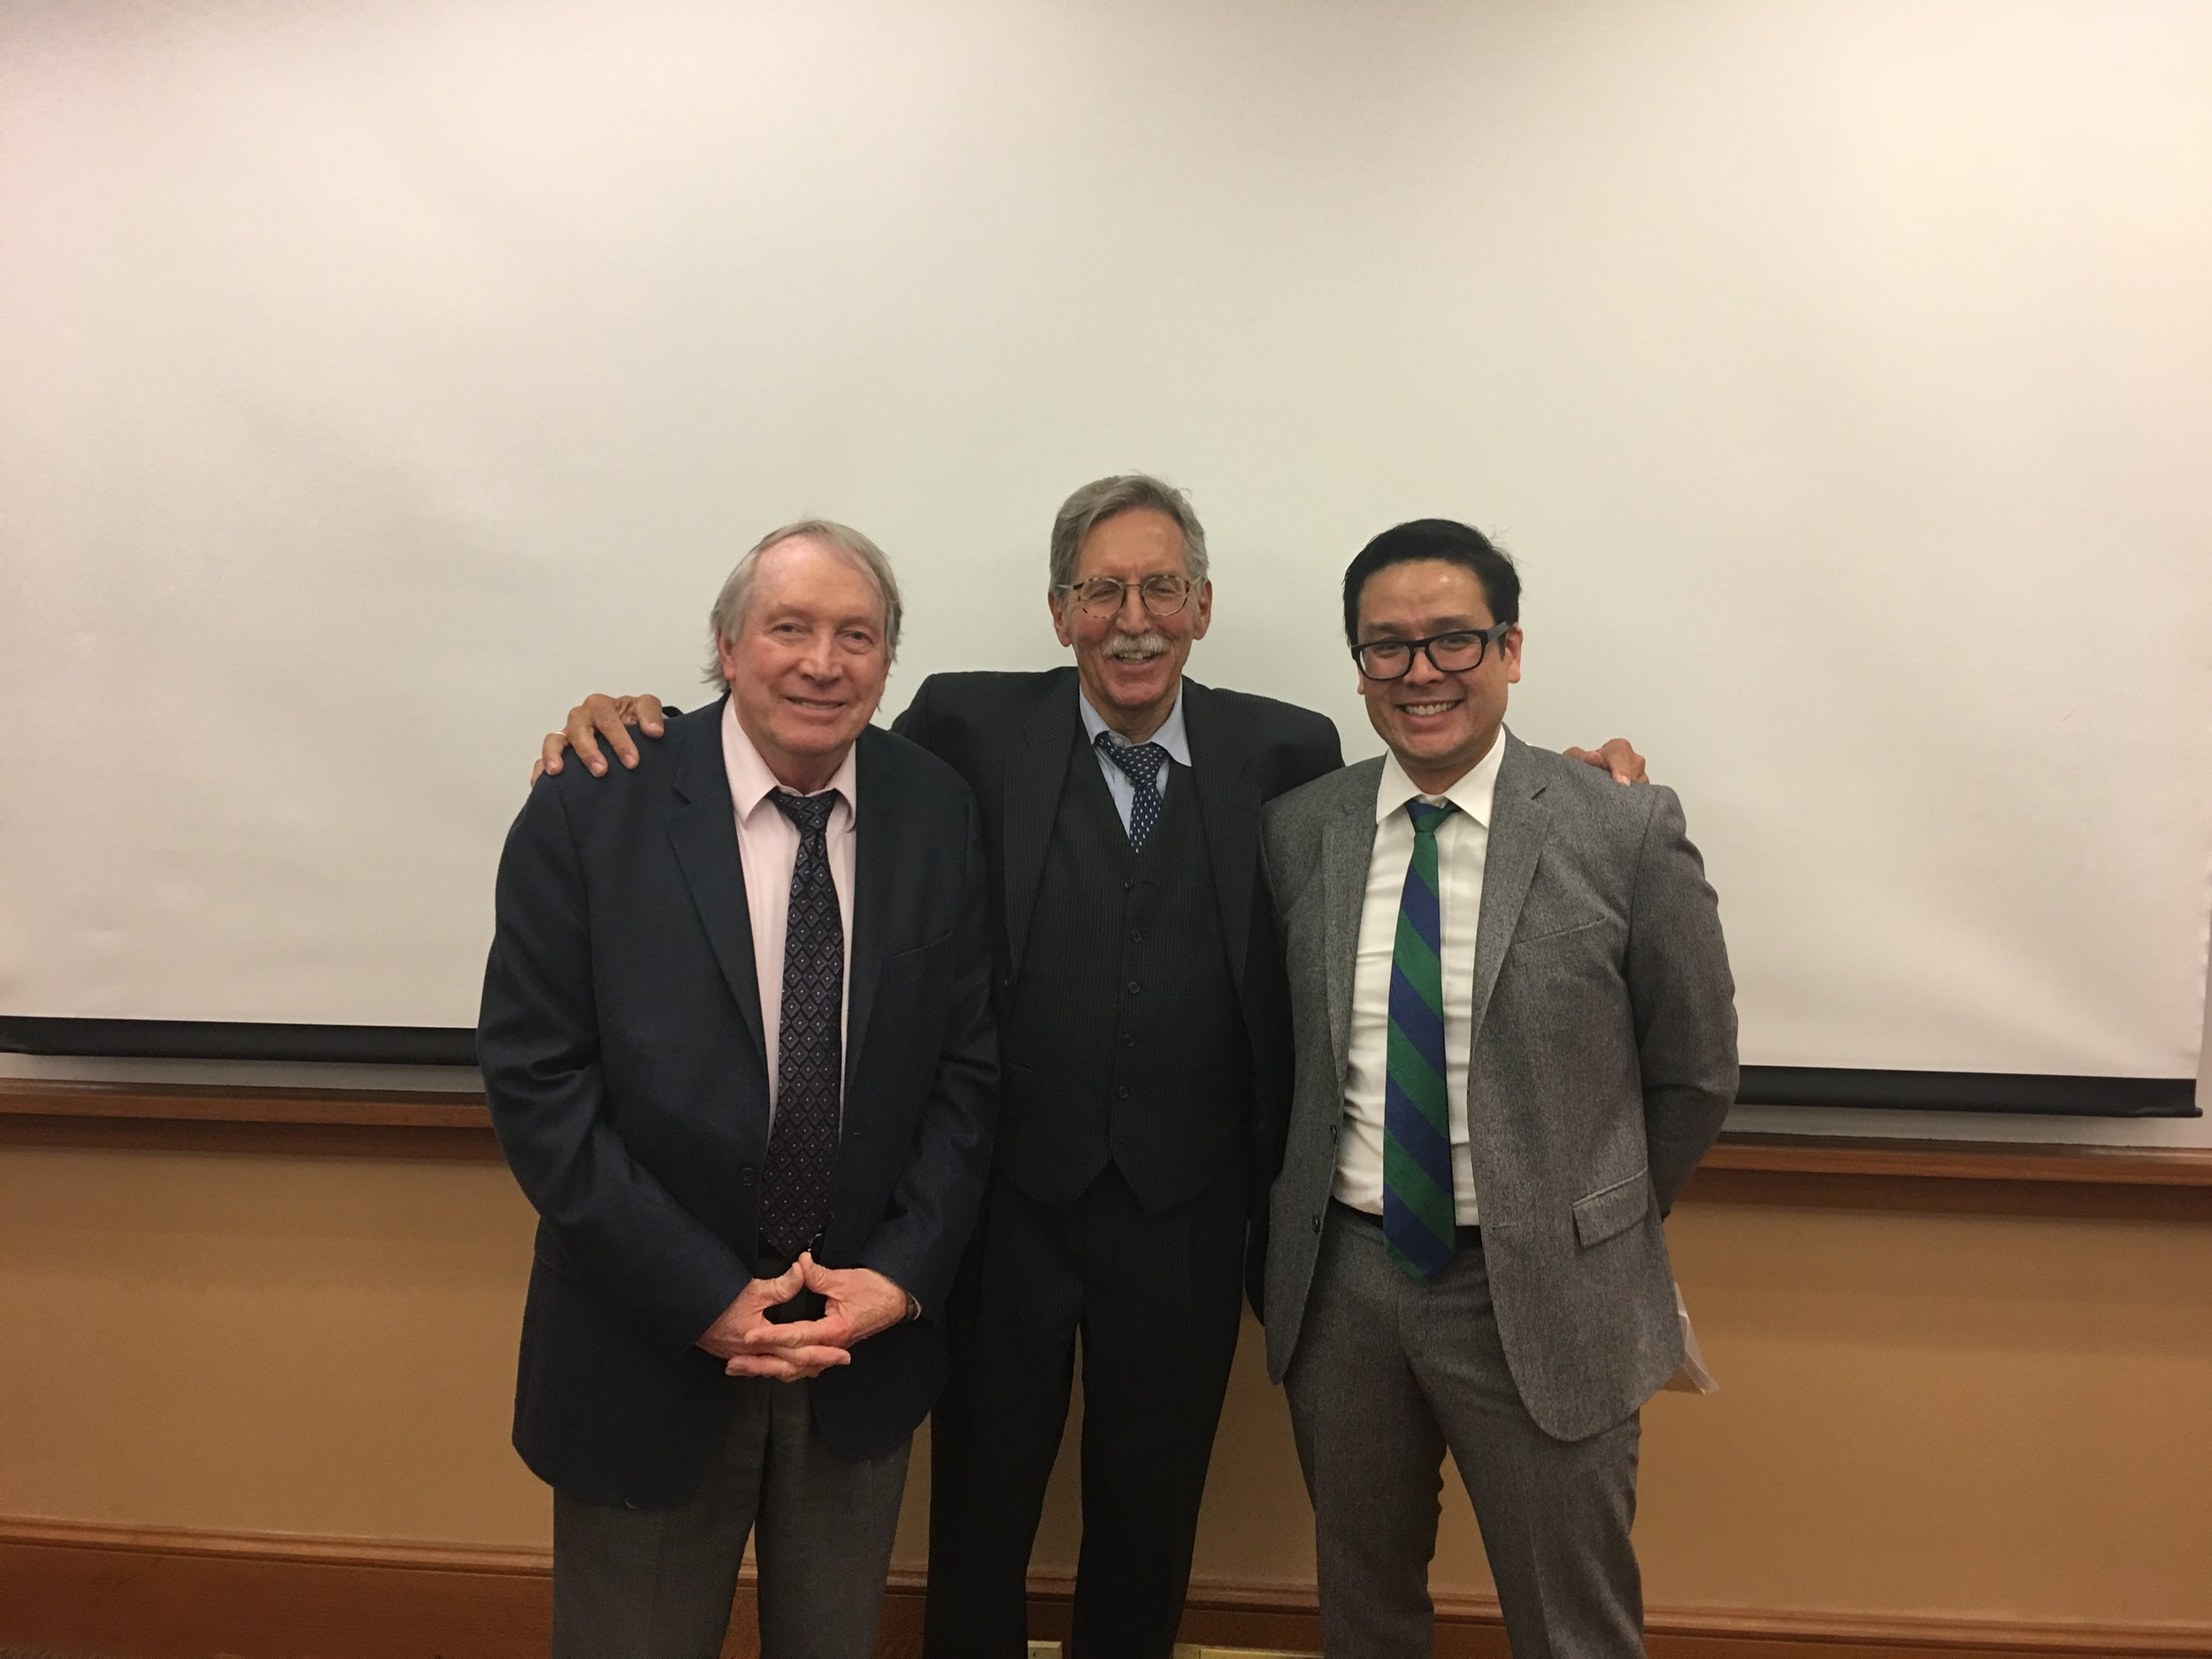 Prof. John Michalczyk, Prof. Lorenz Reibling and Prof. Glenn Mitoma at the Symposium